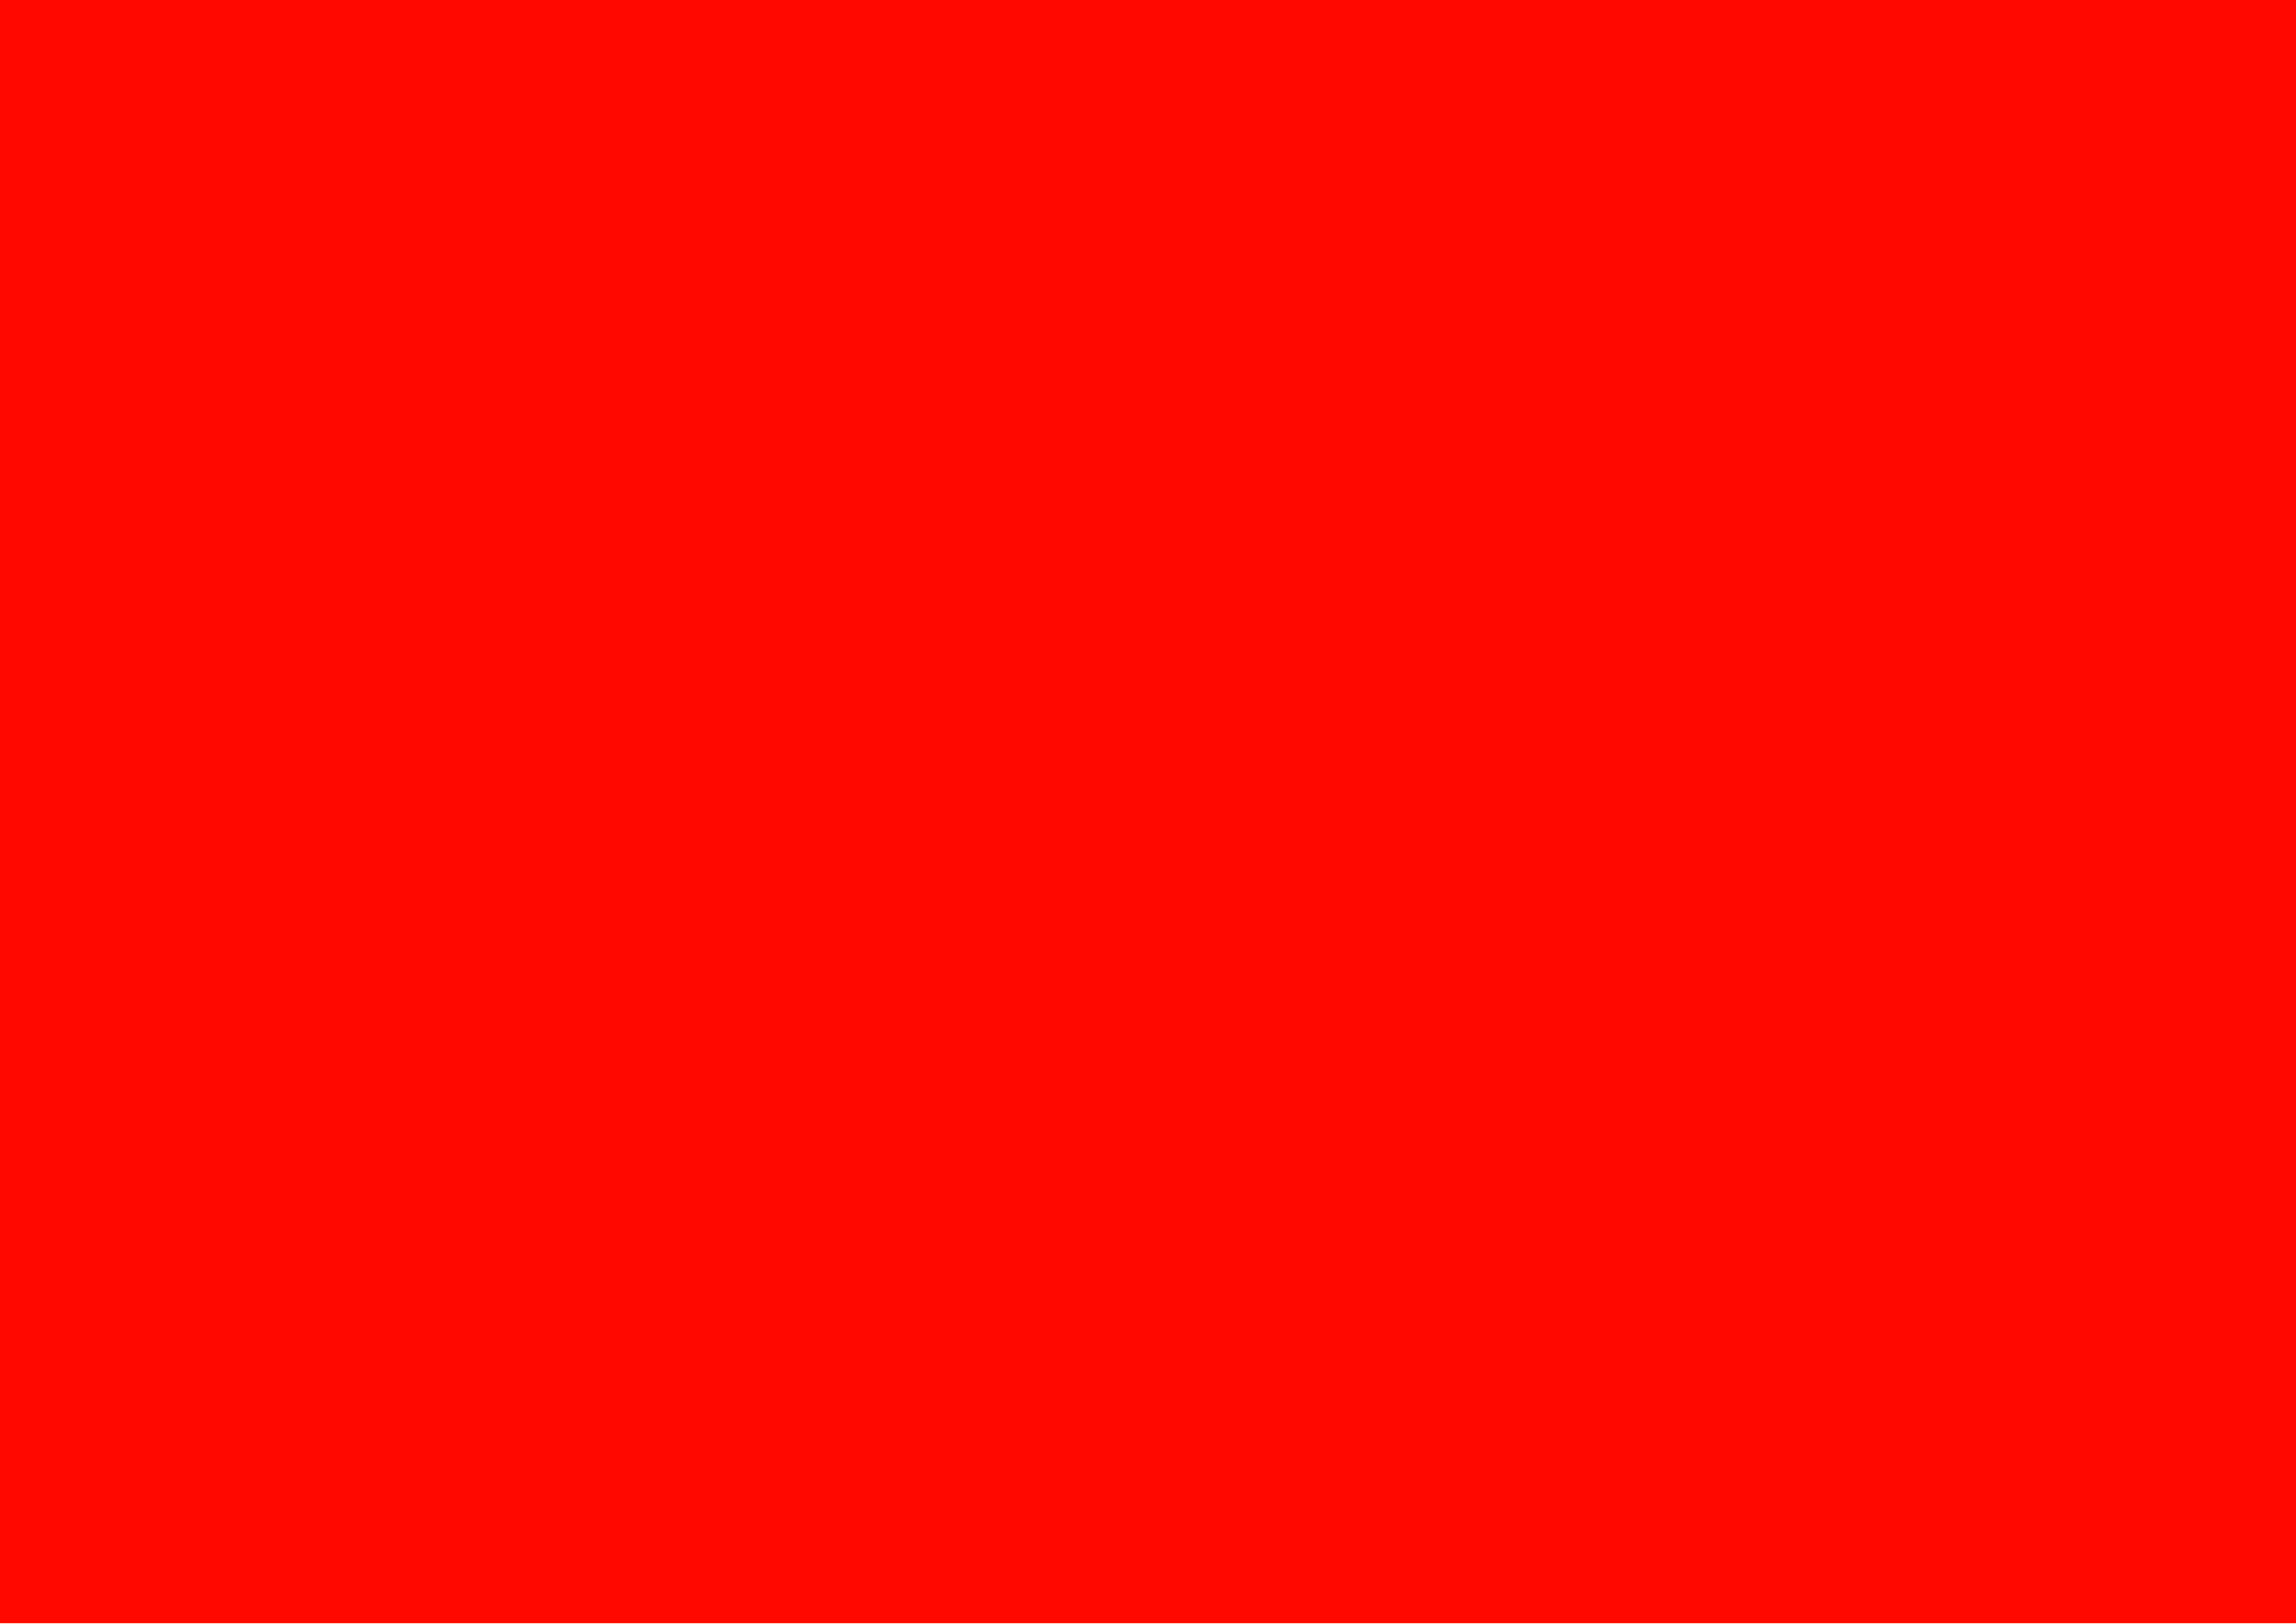 3508x2480 Candy Apple Red Solid Color Background